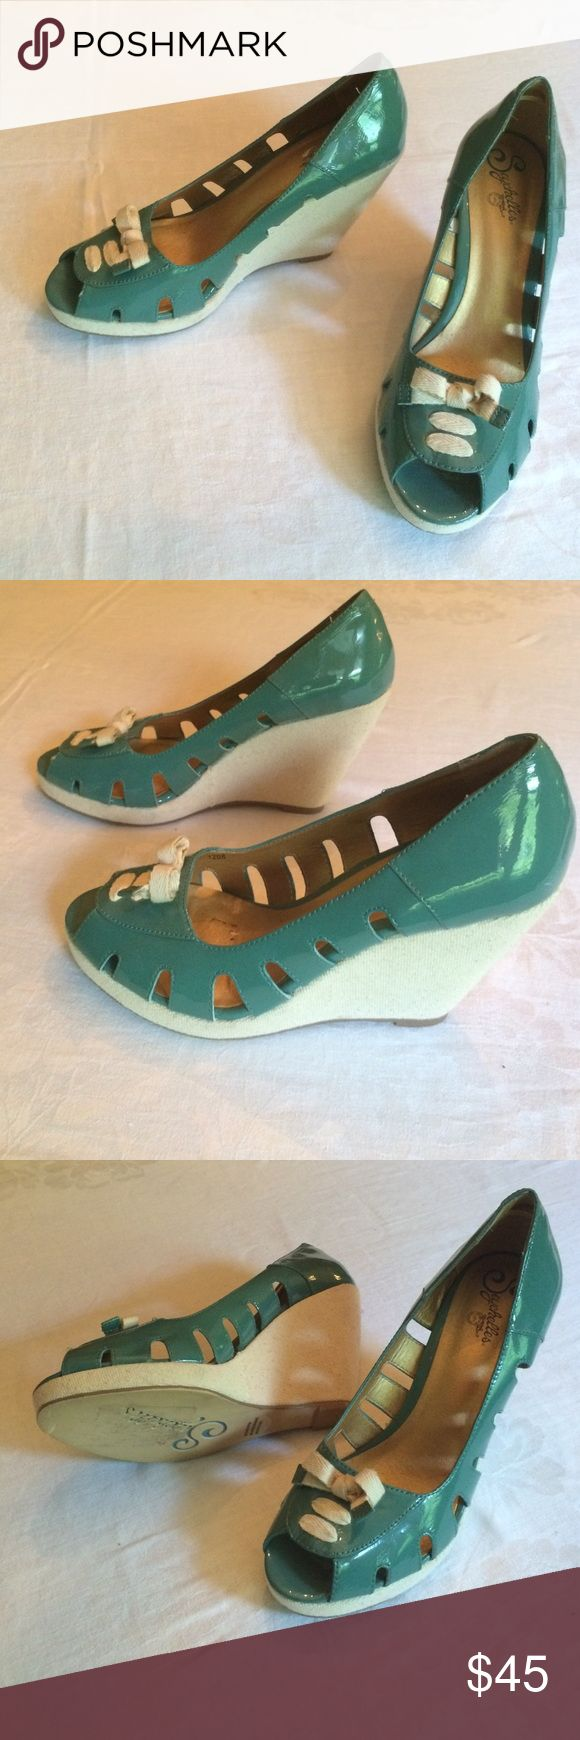 Seychelles teal wedge shoes sz 10 patent leather Adorable teal green patent leather wedge peep toe shoes! Cutout along the edges of the upper with white laces and white wedge heels that feel like fabric. NEVER BEEN WORN!! Size 10 M - NWOT Seychelles Shoes Wedges